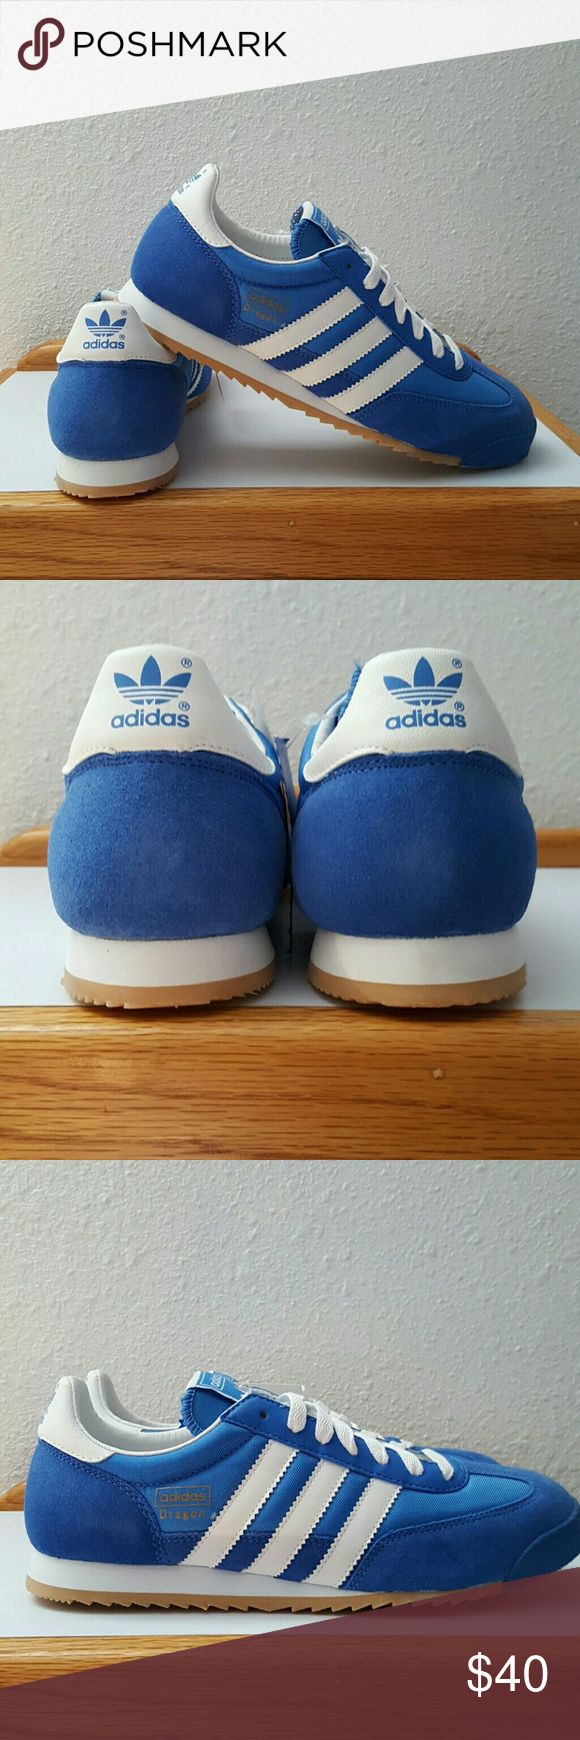 Adidas Originals Dragon Lady Never worn...original tags but no box.  Tiny tear on outside of right shoe near stripe closest to heel. Adidas Shoes Sneakers